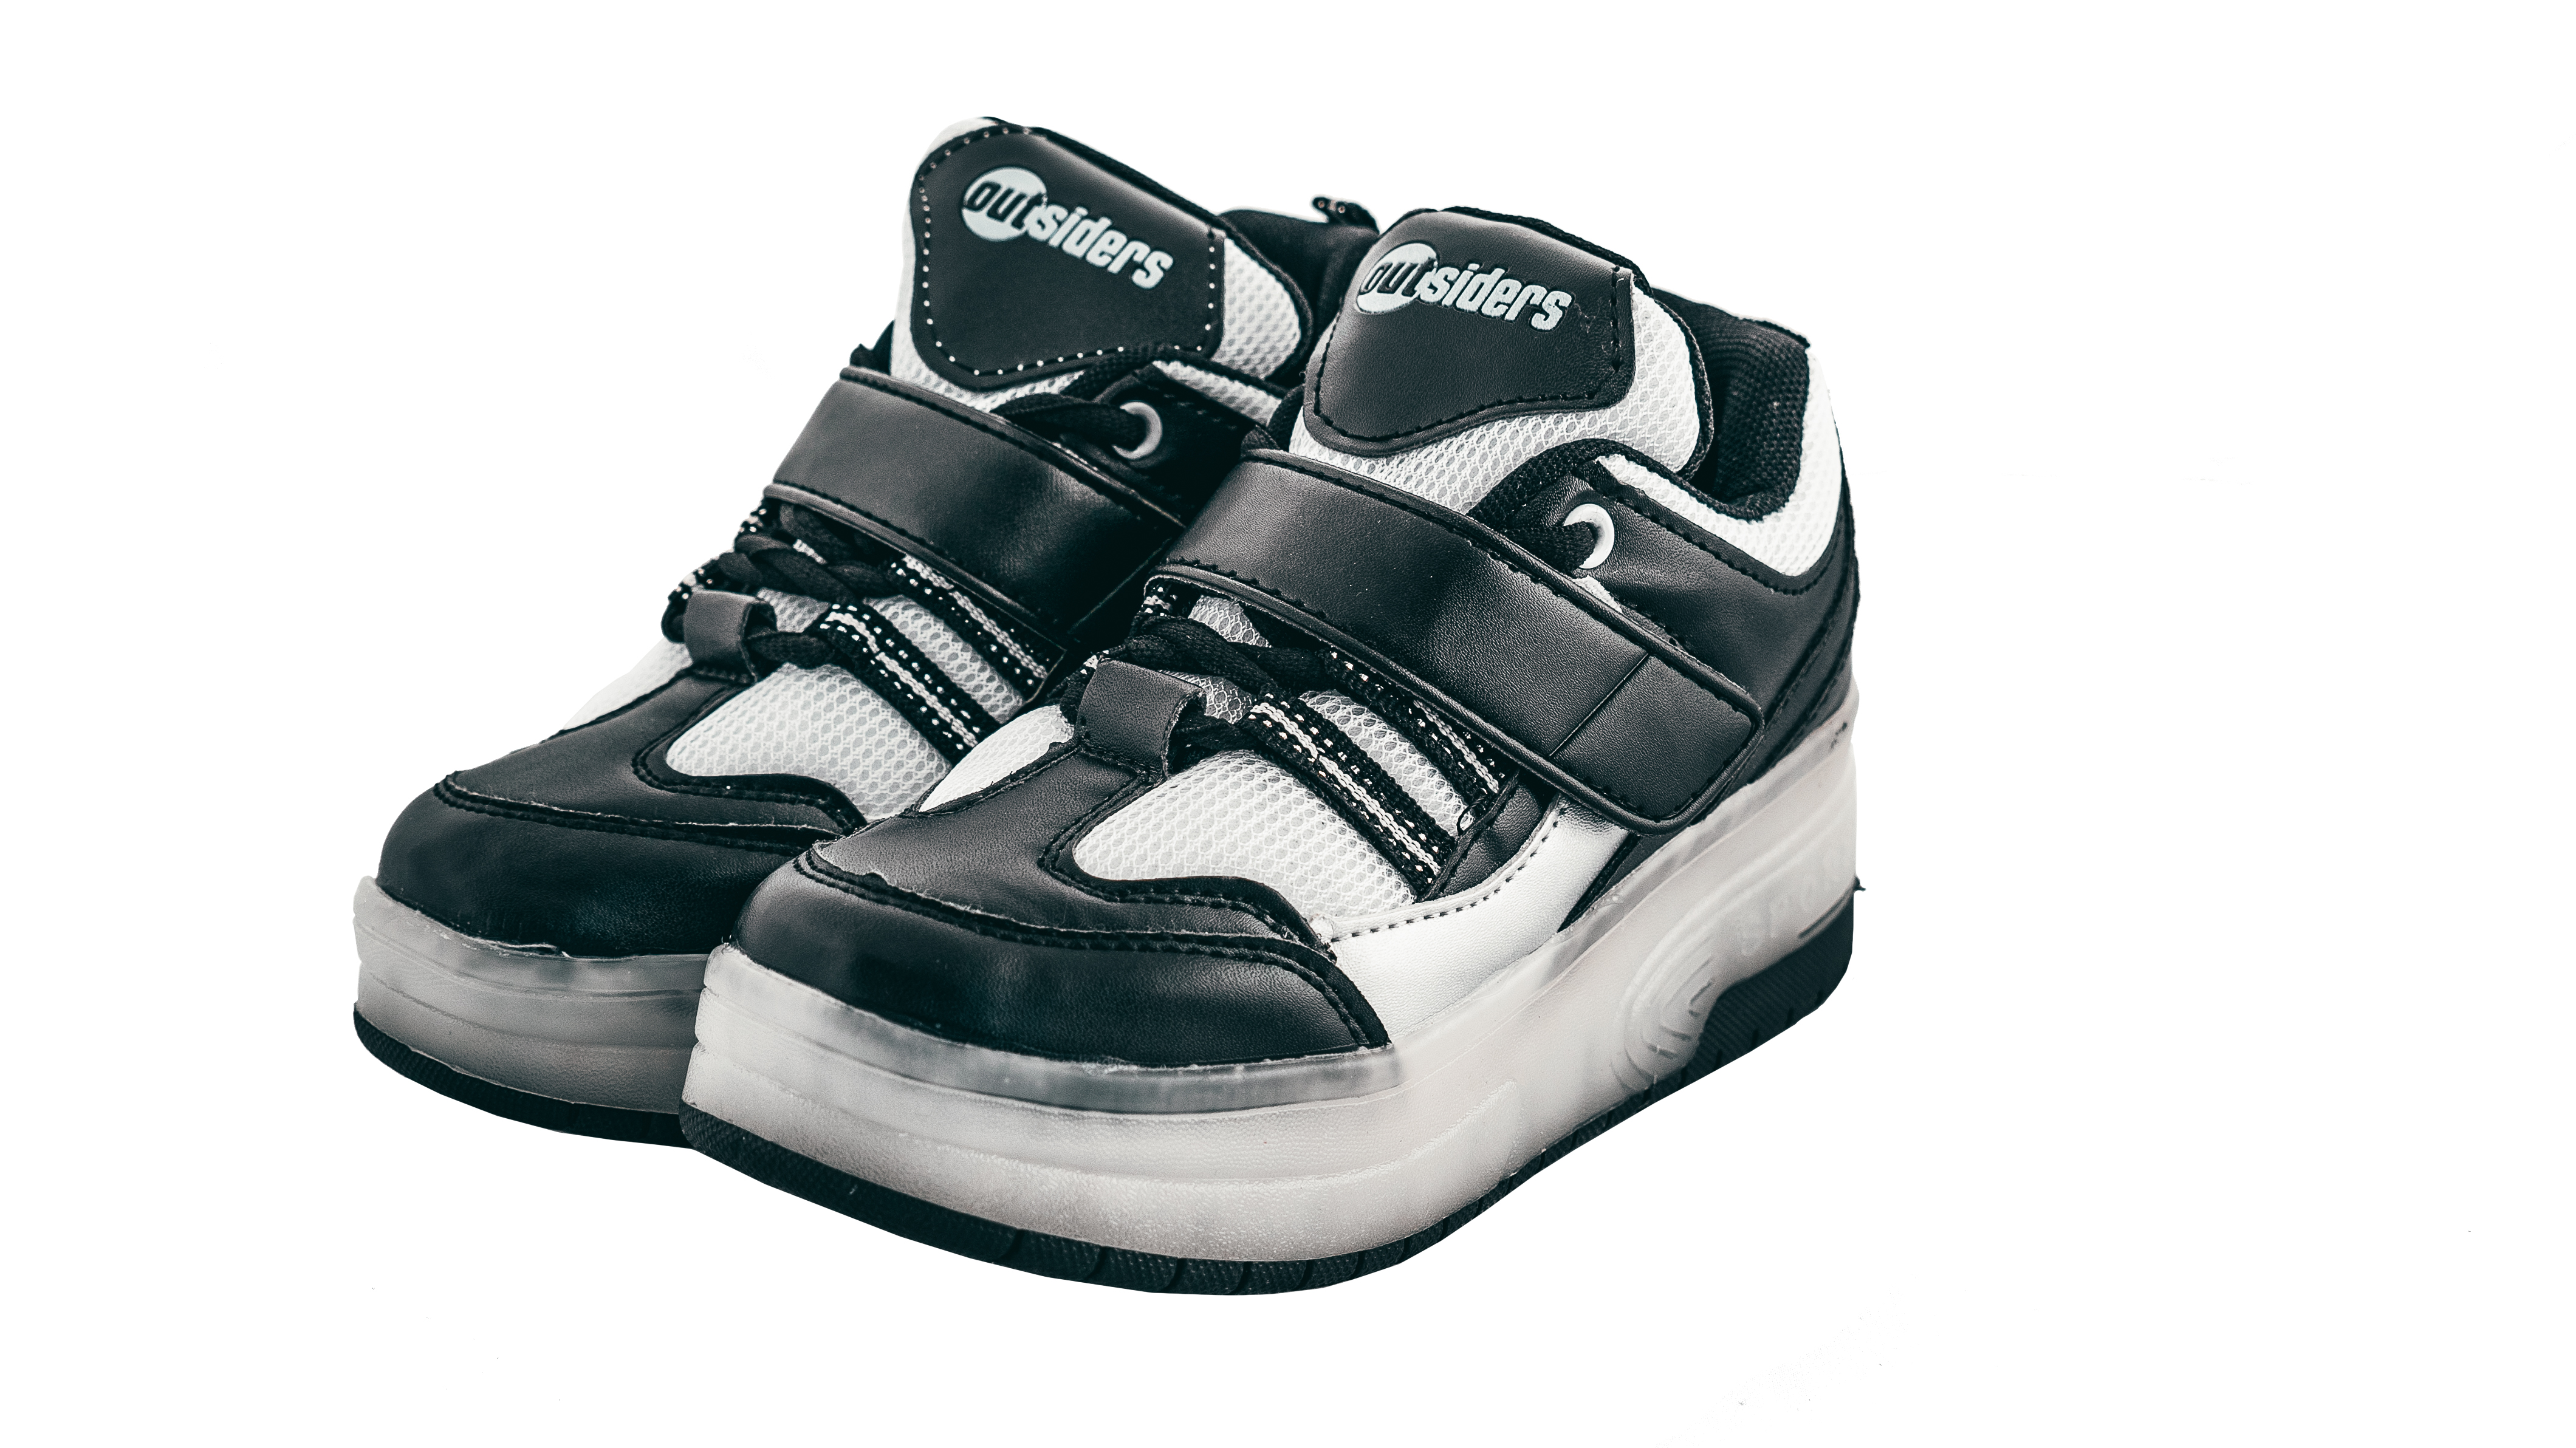 Outsiders - Roller Shoes with LED - Black/Silver (size: 28)